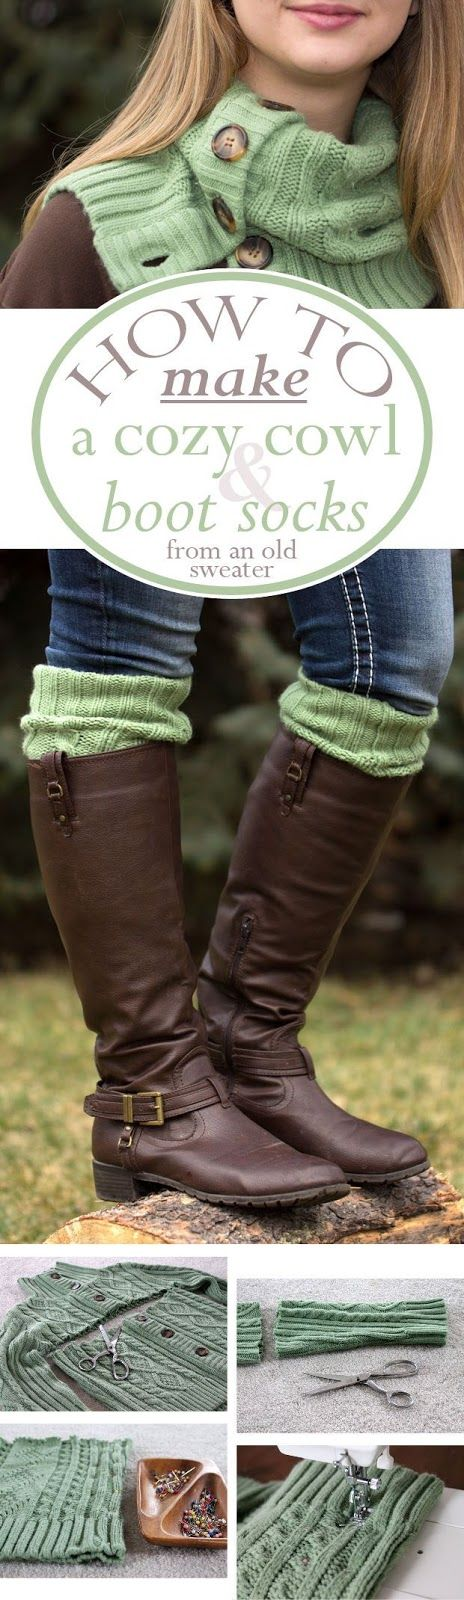 Create a Cozy Cardigan Cowl and Boot Socks From an Old Sweater | Pinning For Living